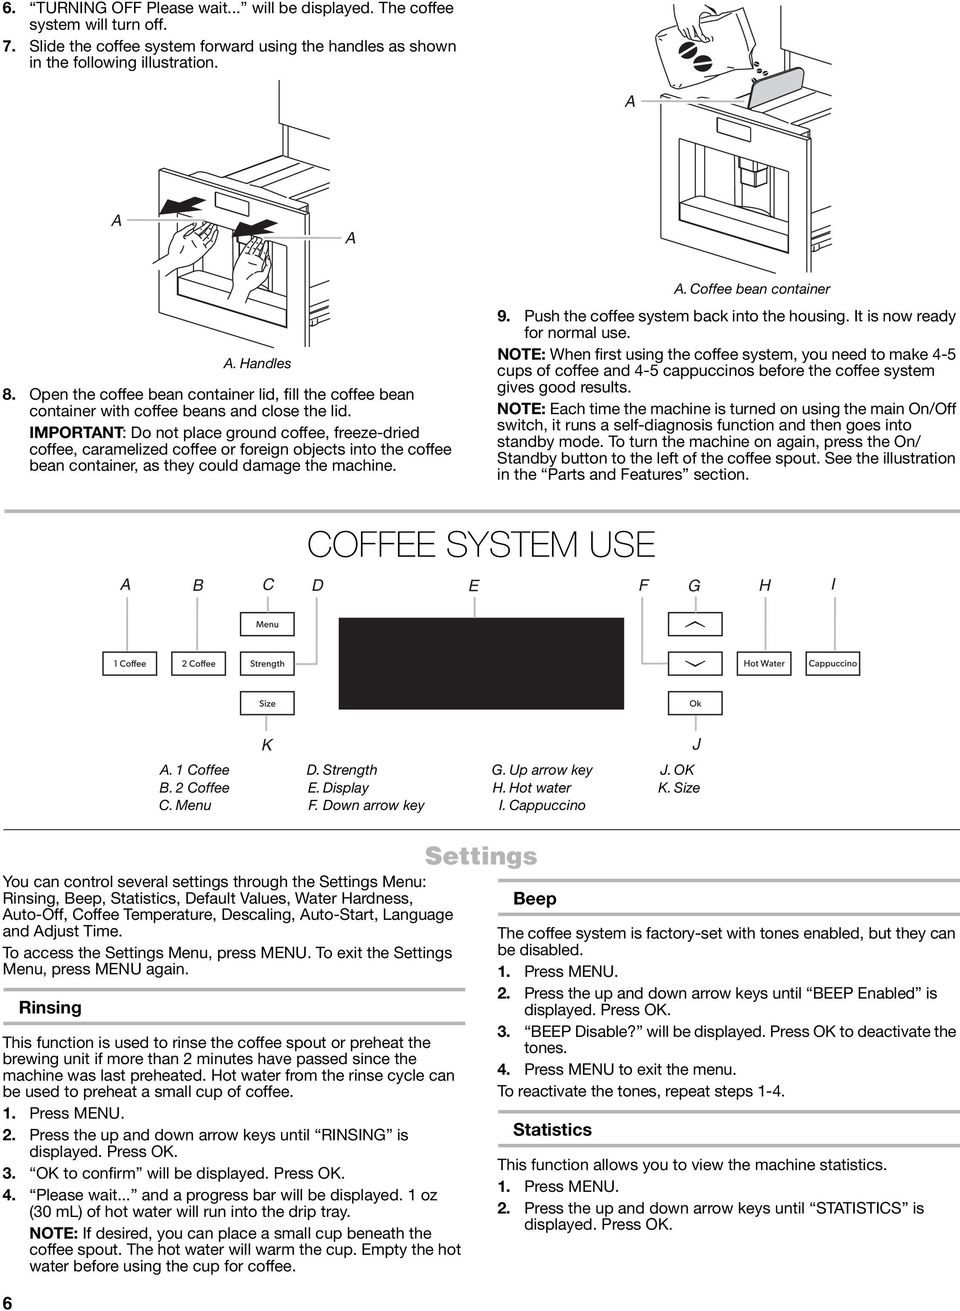 IMPORTNT: Do not place ground coffee, freeze-dried coffee, caramelized coffee or foreign objects into the coffee bean container, as they could damage the machine.. Coffee bean container 9.